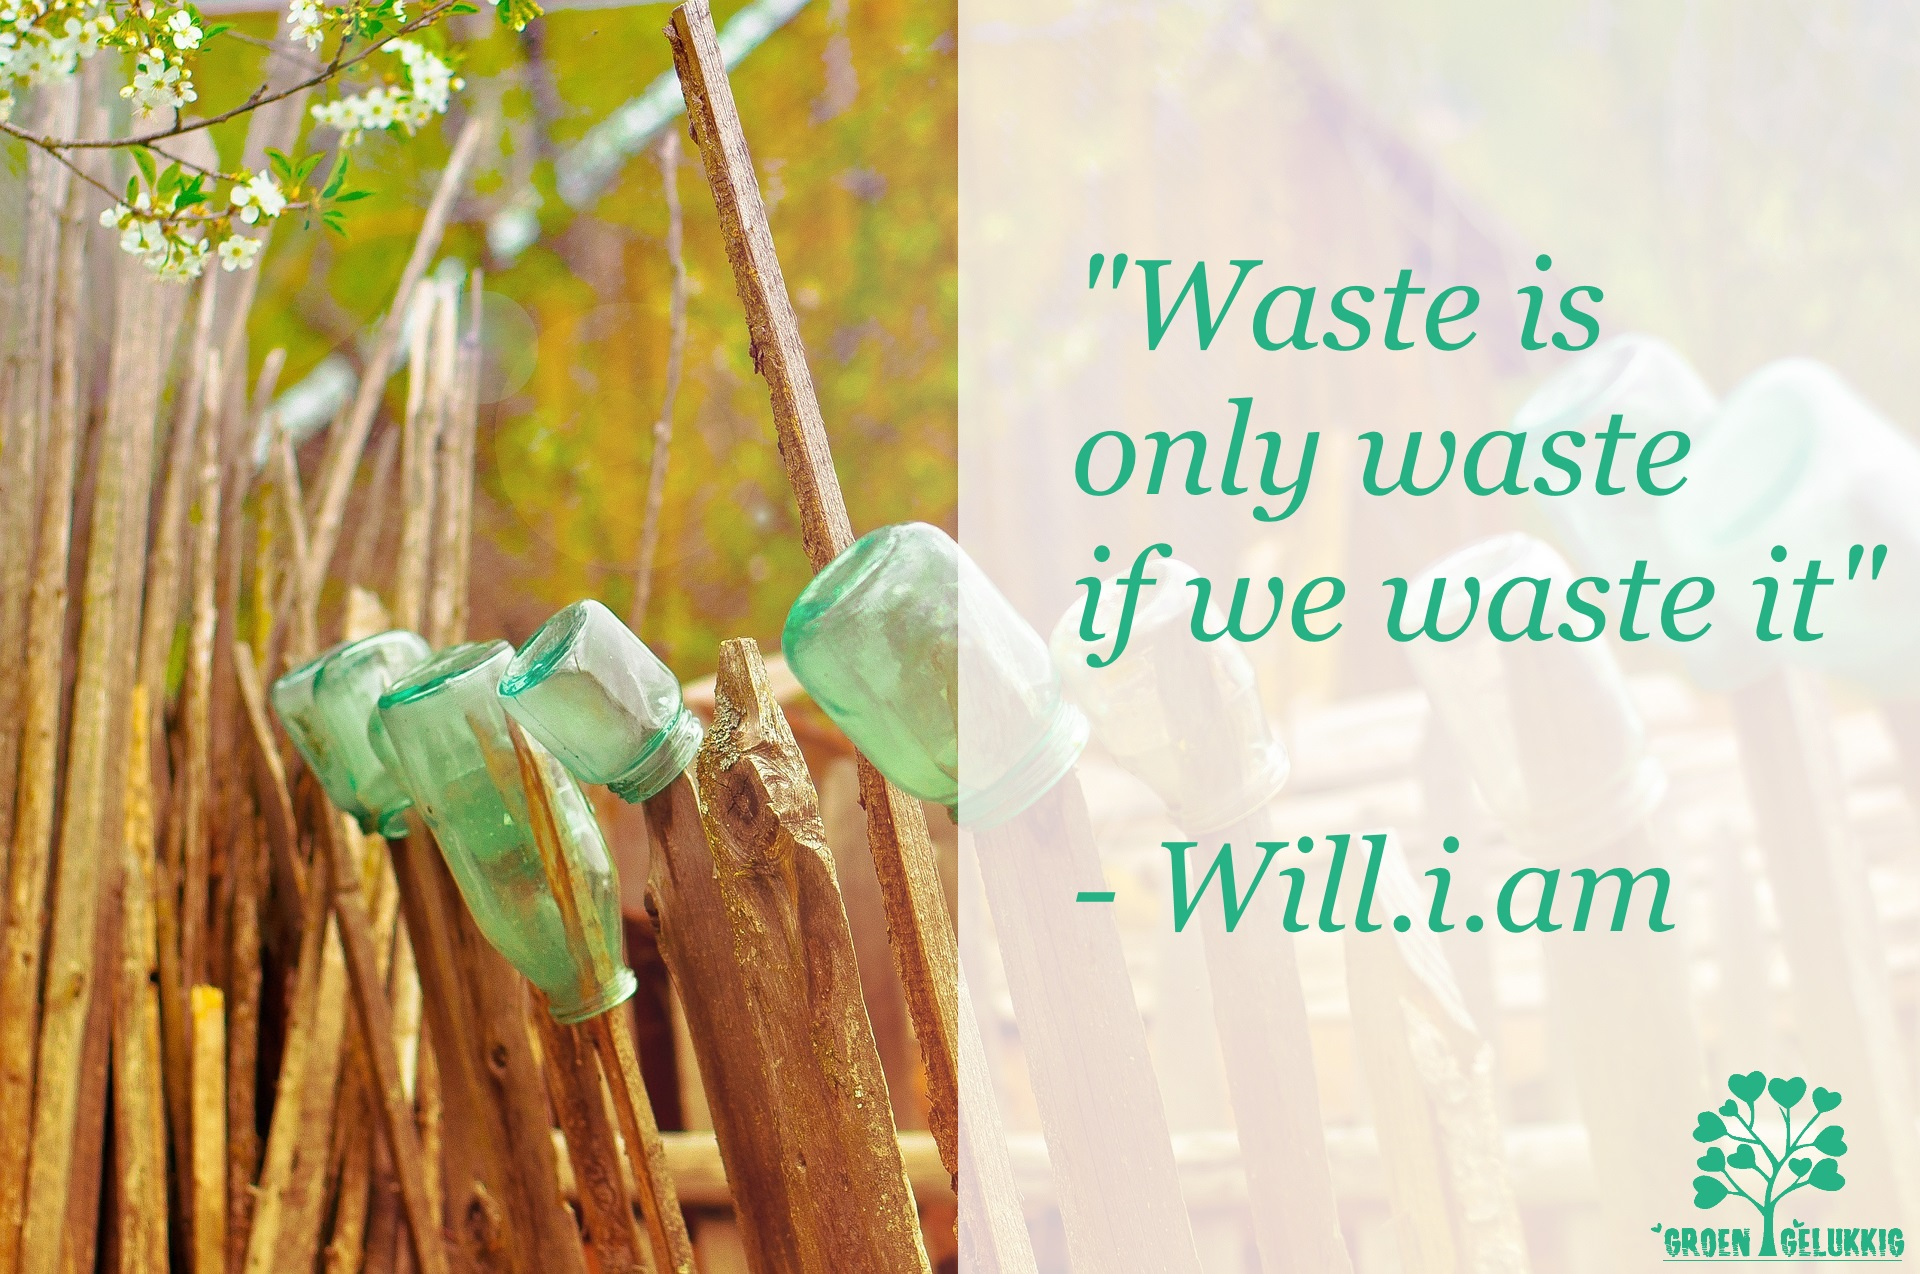 Waste is only waste if we waste it